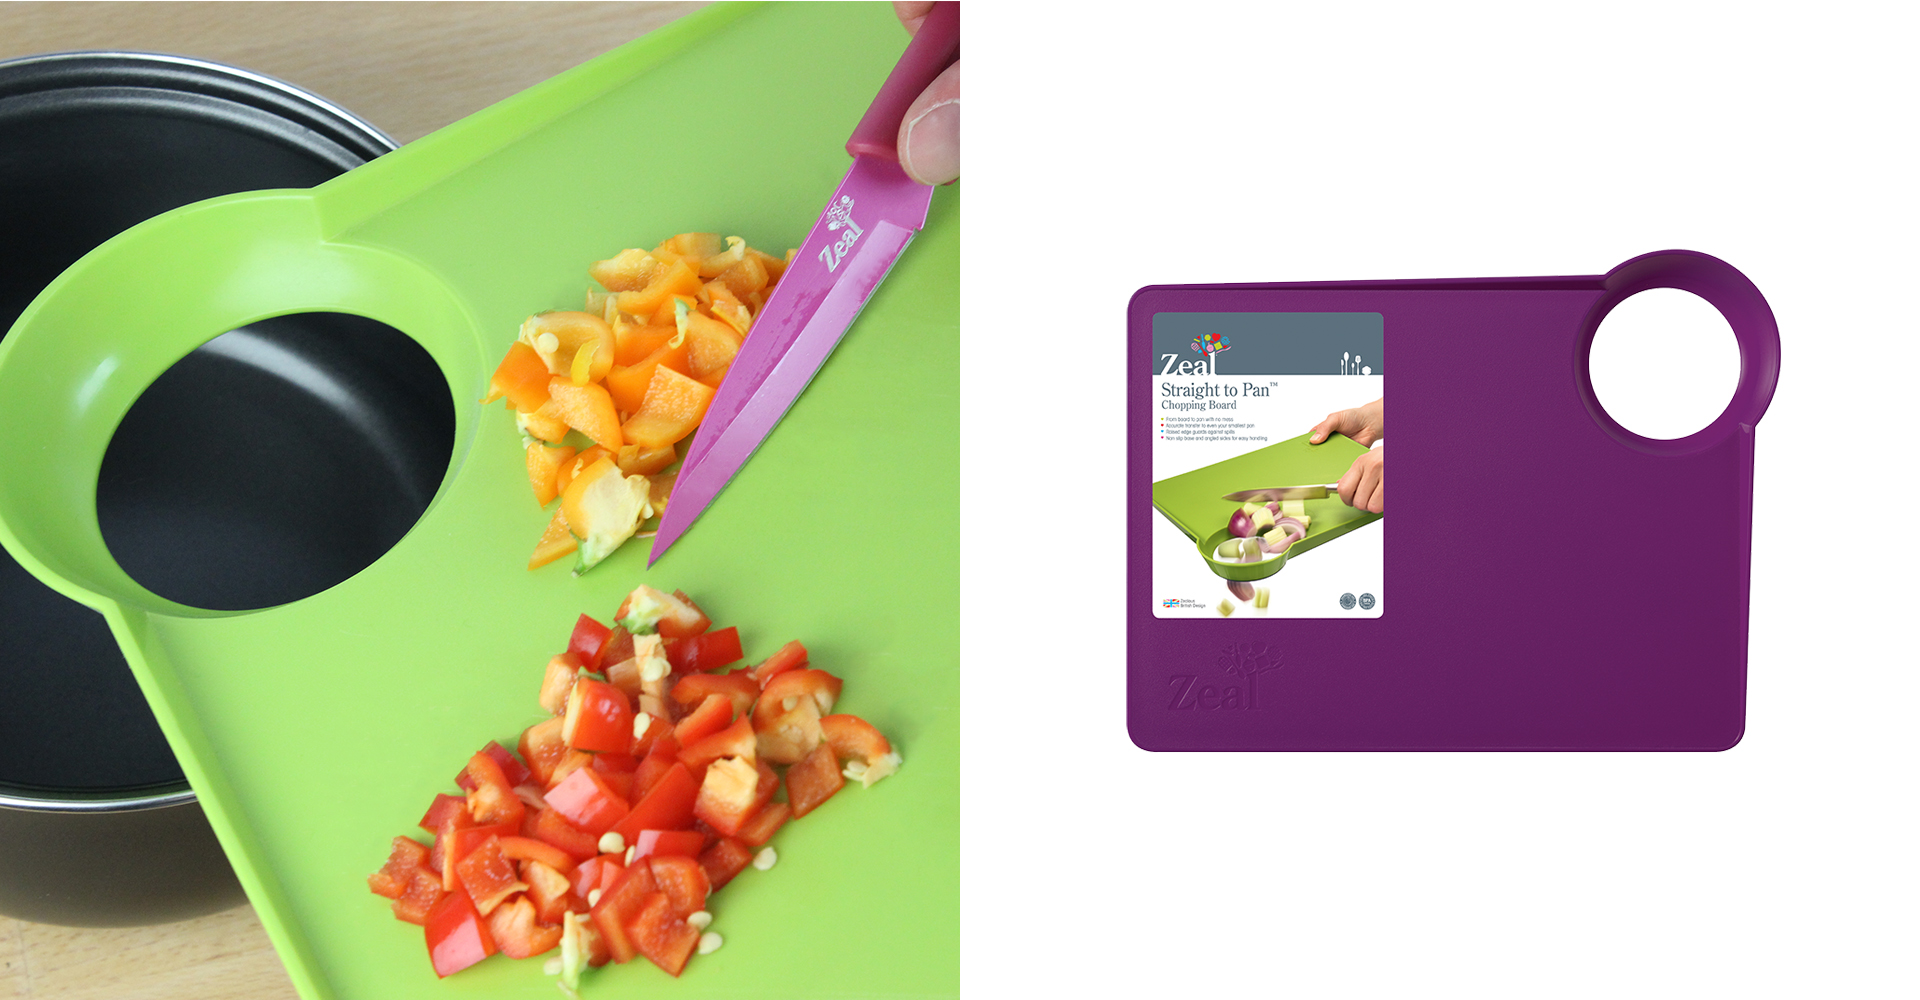 CKS Control range - Hole board - chopped - vegetables - cooking - zeal - green - purple